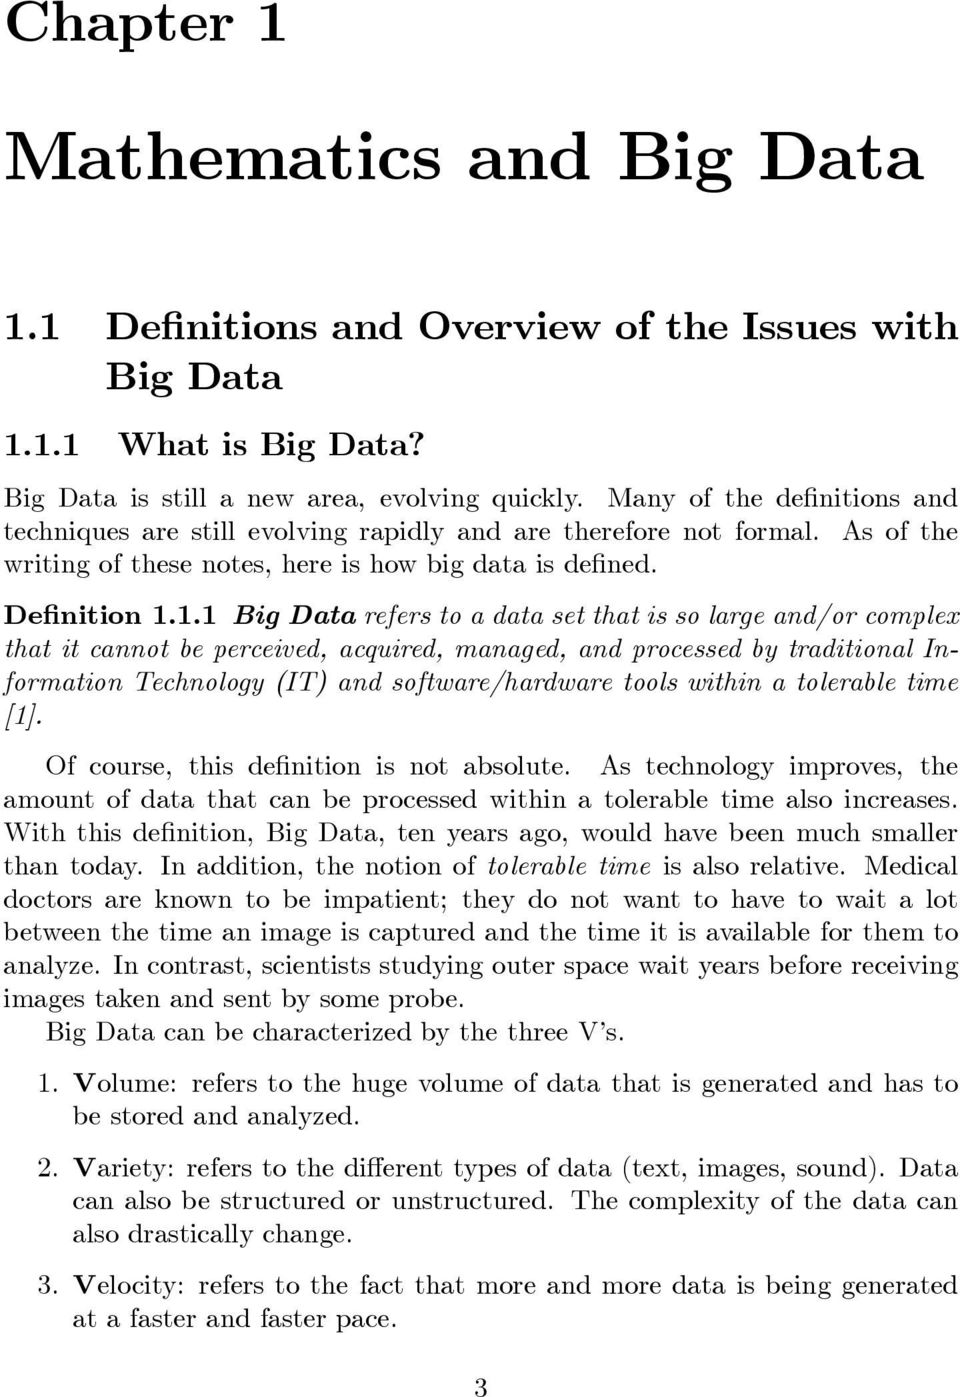 1.1 Big Data refers to a data set that is so large and/or complex that it cannot be perceived, acquired, managed, and processed by traditional Information Technology (IT) and software/hardware tools